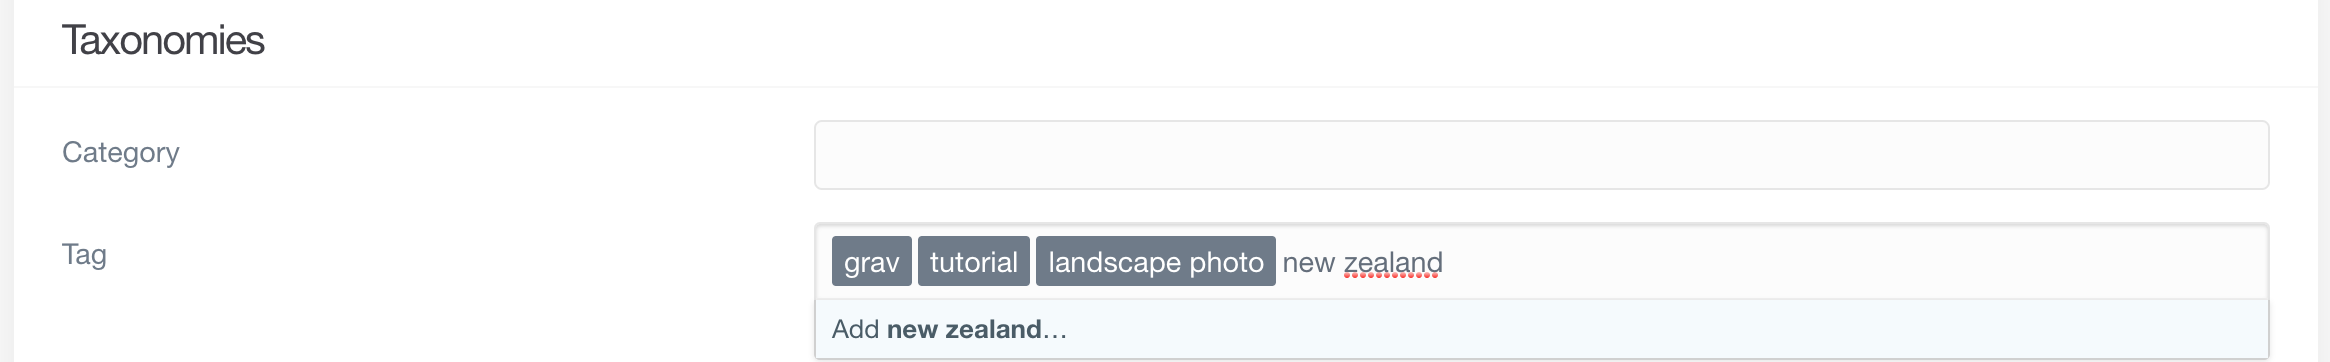 The tags 'grav' 'tutorial' and 'landscape photo' have been added. 'new zealand' has been typed into the box but not yet added.